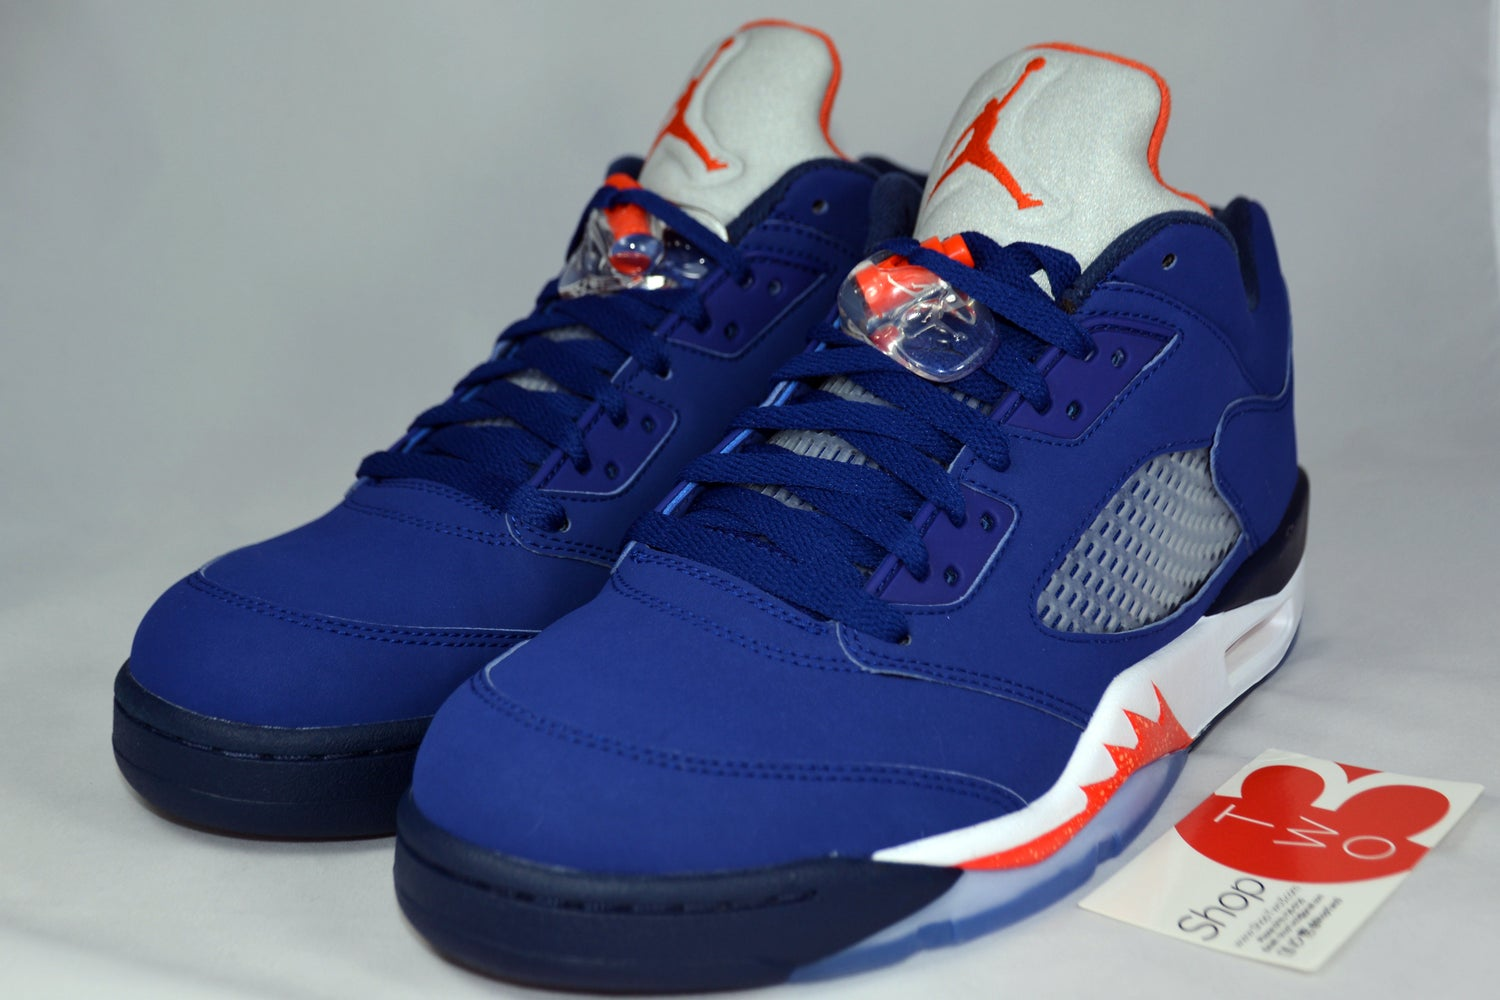 7d5588ec3 ... Image of Air Jordan 5 Retro Low ...